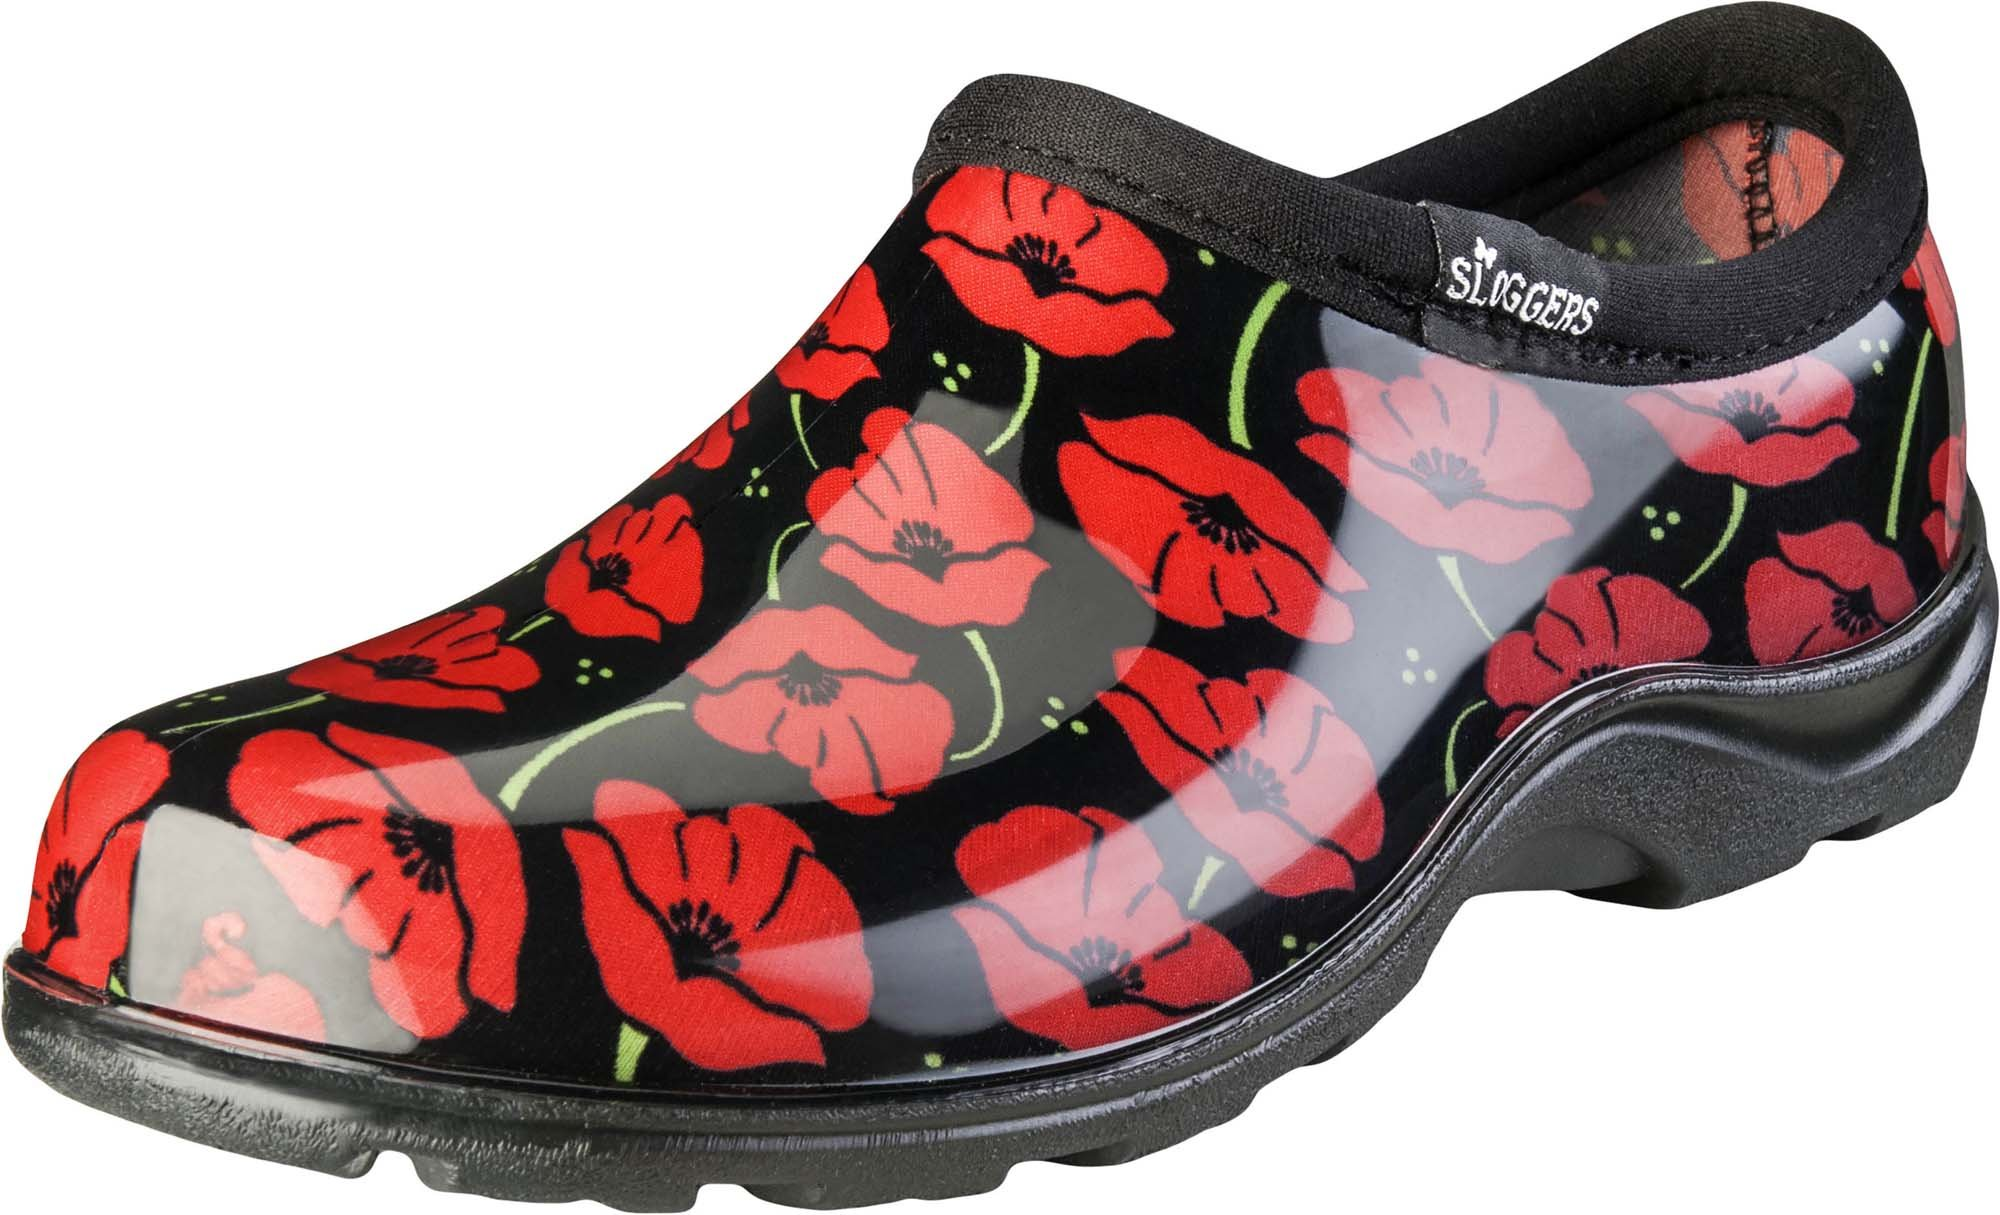 Sloggers Women's Waterproof  Rain and Garden Shoe with Comfort Insole, Poppy Red, Size 9, Style 5116POR09 by Sloggers